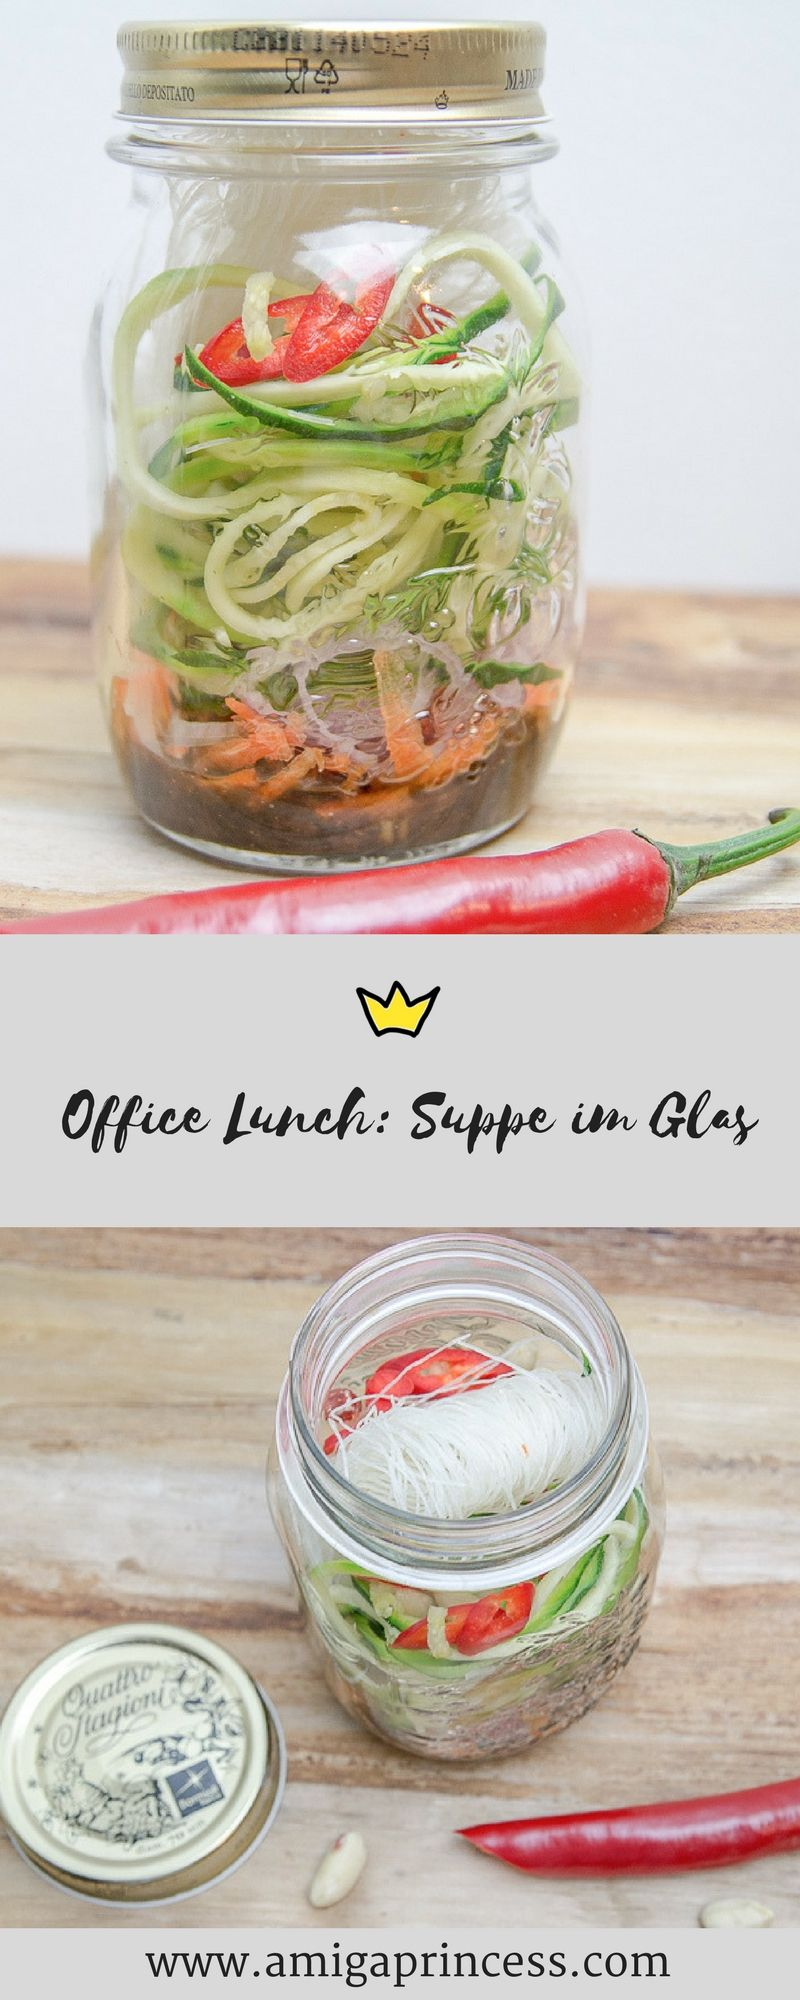 suppe im glas easy office lunch s a l a d pinterest gesundes mittagessen b ro suppe im. Black Bedroom Furniture Sets. Home Design Ideas